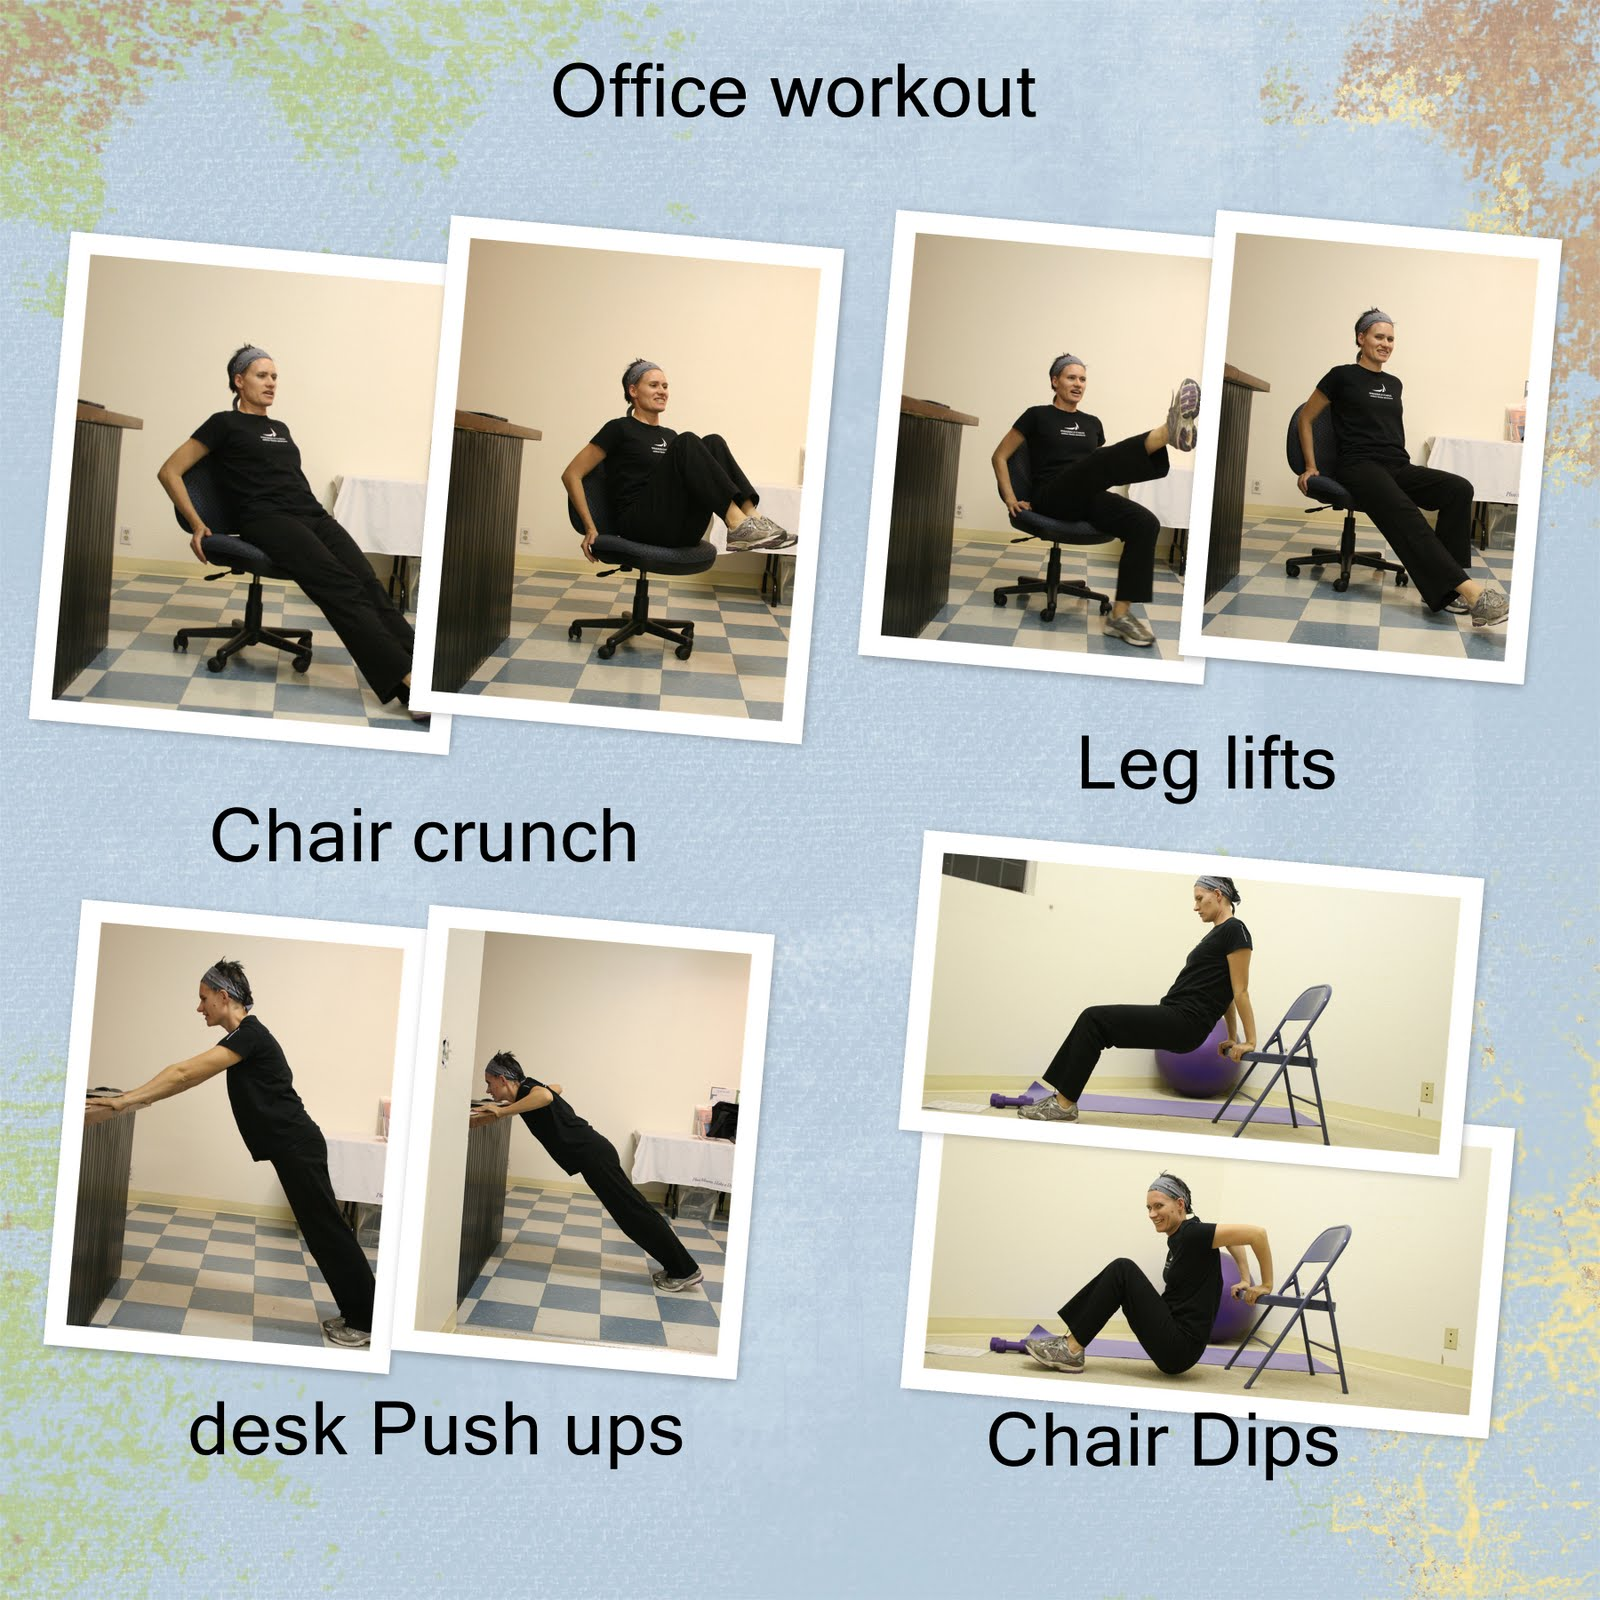 Office / chair exercises